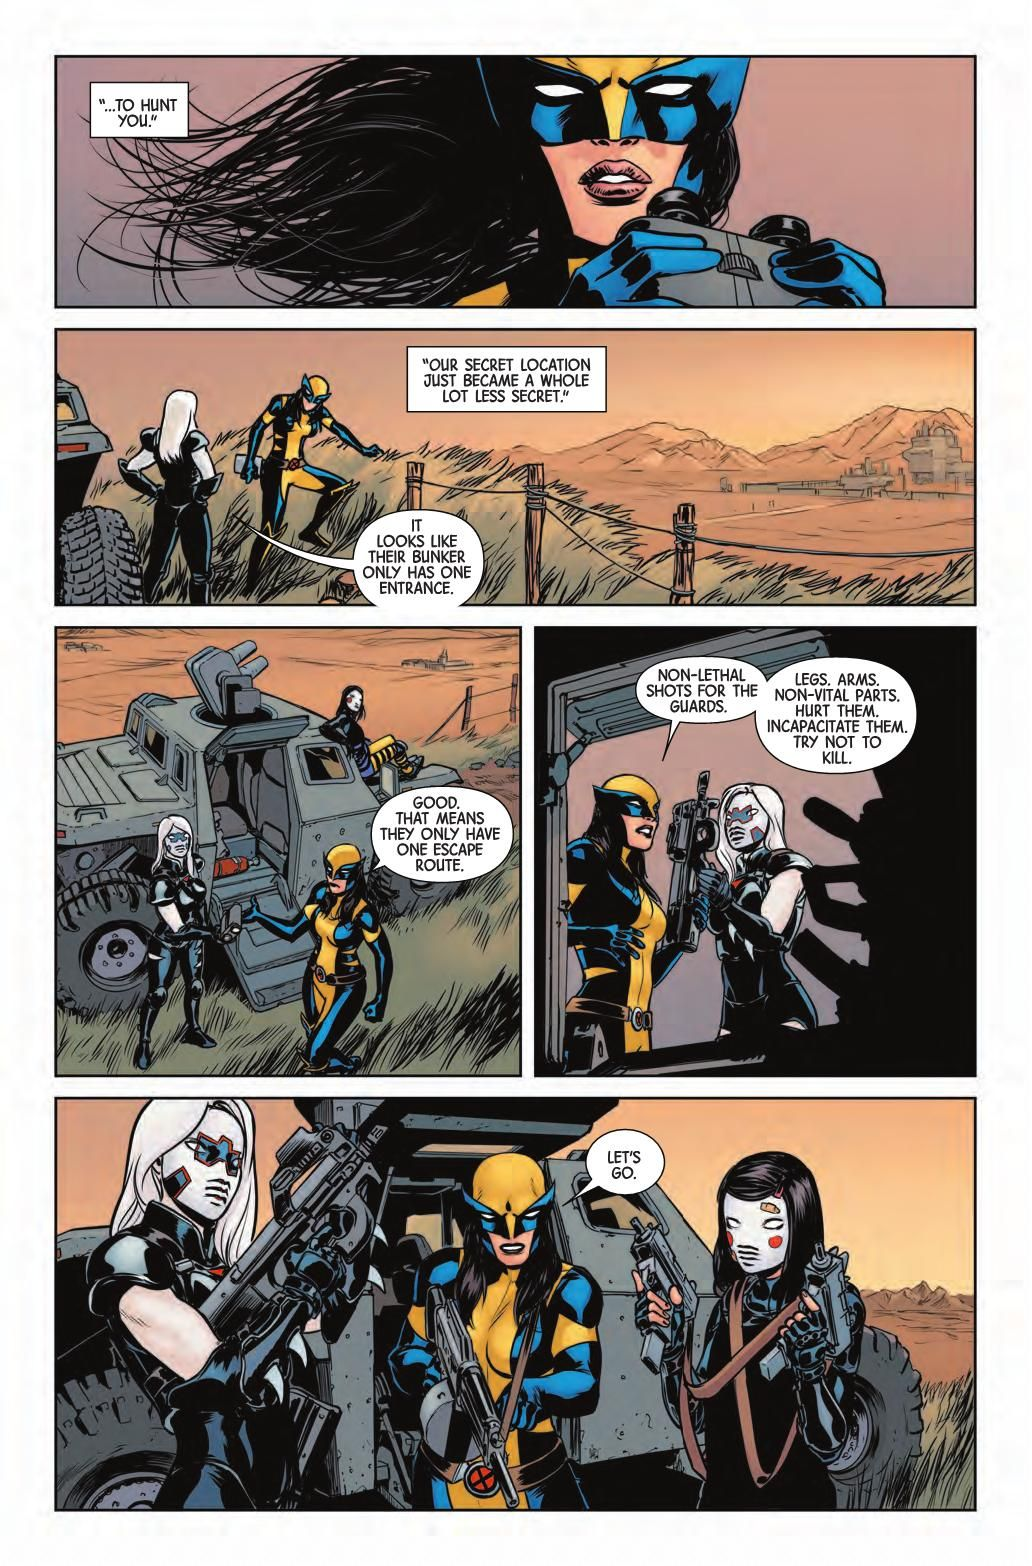 Preview: All-New Wolverine #6, Story: Tom Taylor Art: David Lopez Covers: Bengal & Vanesa Del Rey Publisher: Marvel Publication Date: March 9th, 2016 Price: $3.99  ...,  #All-Comic #All-ComicPreviews #ALL-NEWWOLVERINE #Bengal #Comics #DavidLopez #Marvel #previews #TomTaylor #VanesaDelRey